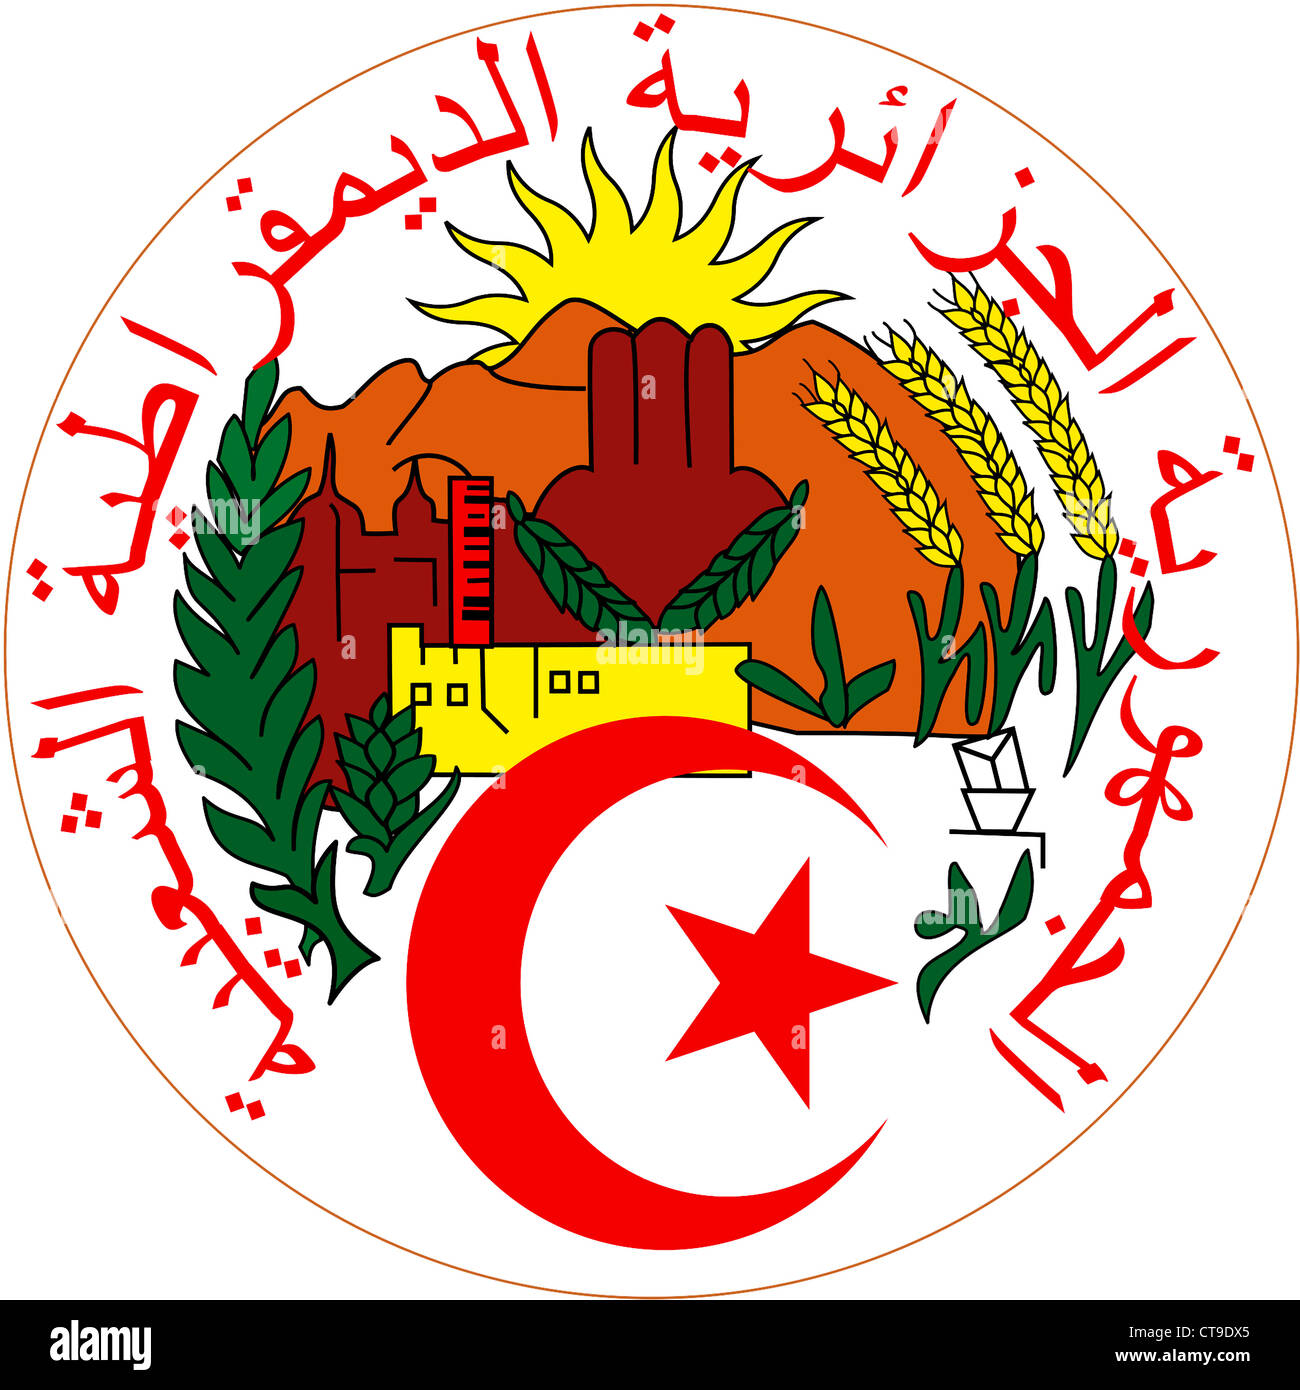 Coat of arms of Algeria. - Stock Image